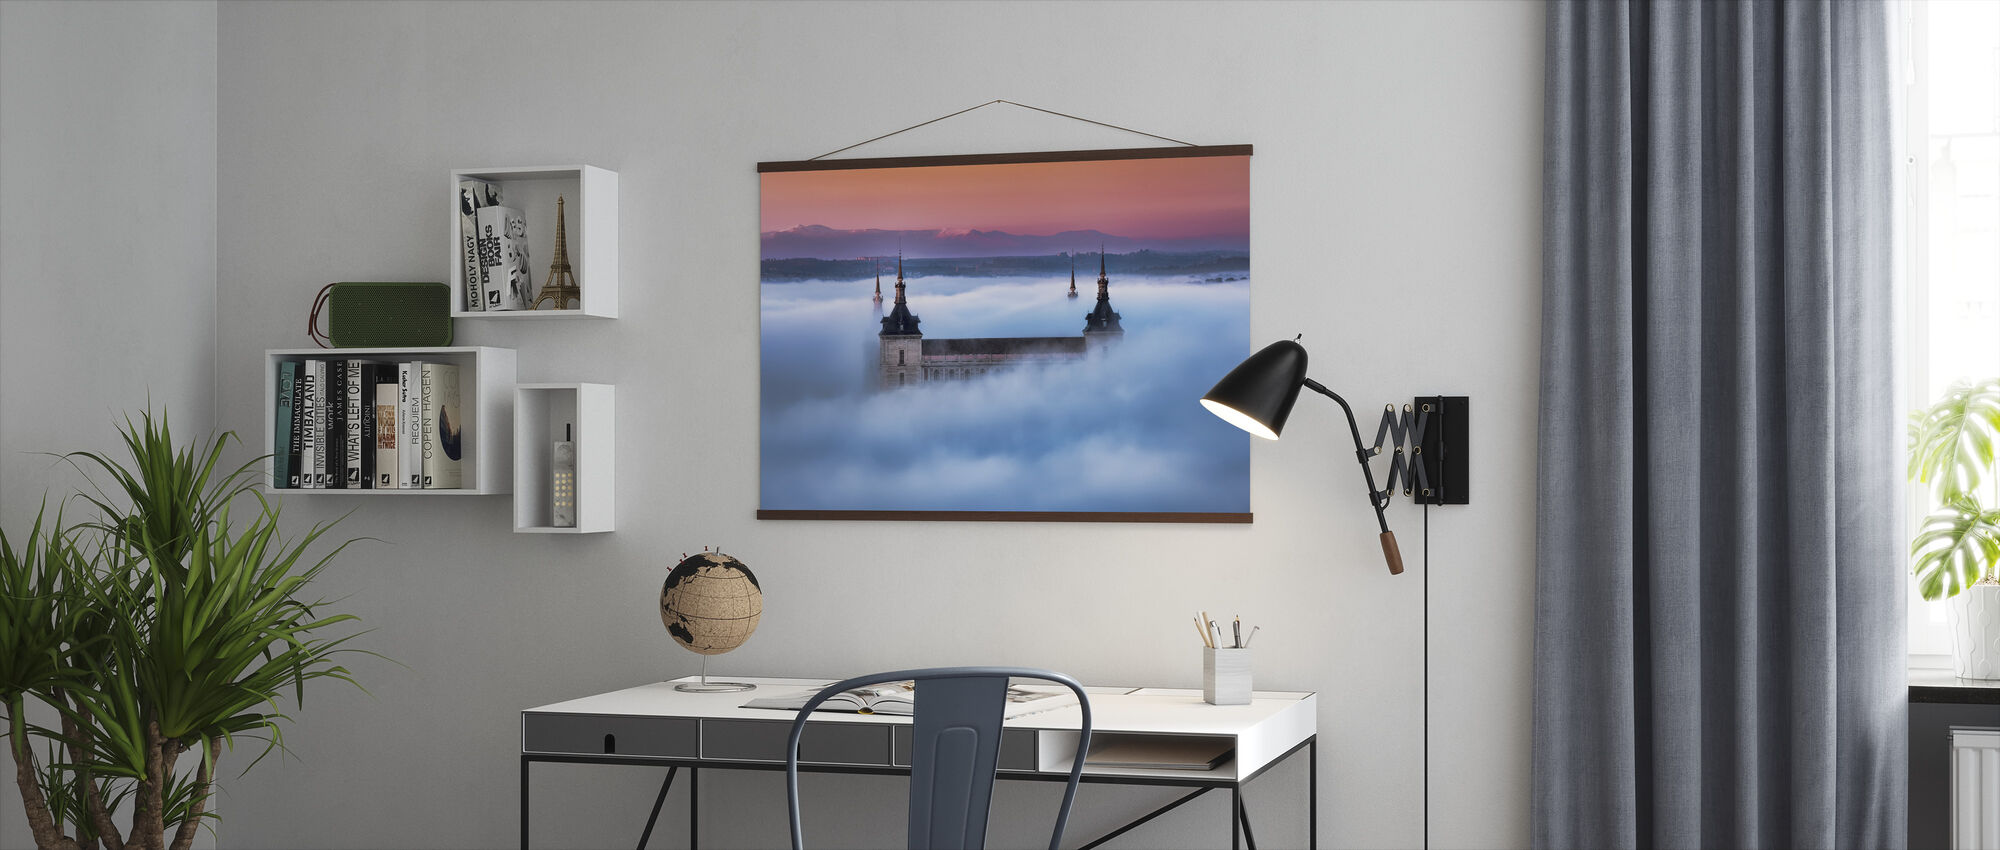 Toledo City Foggy Sunset - Poster - Office